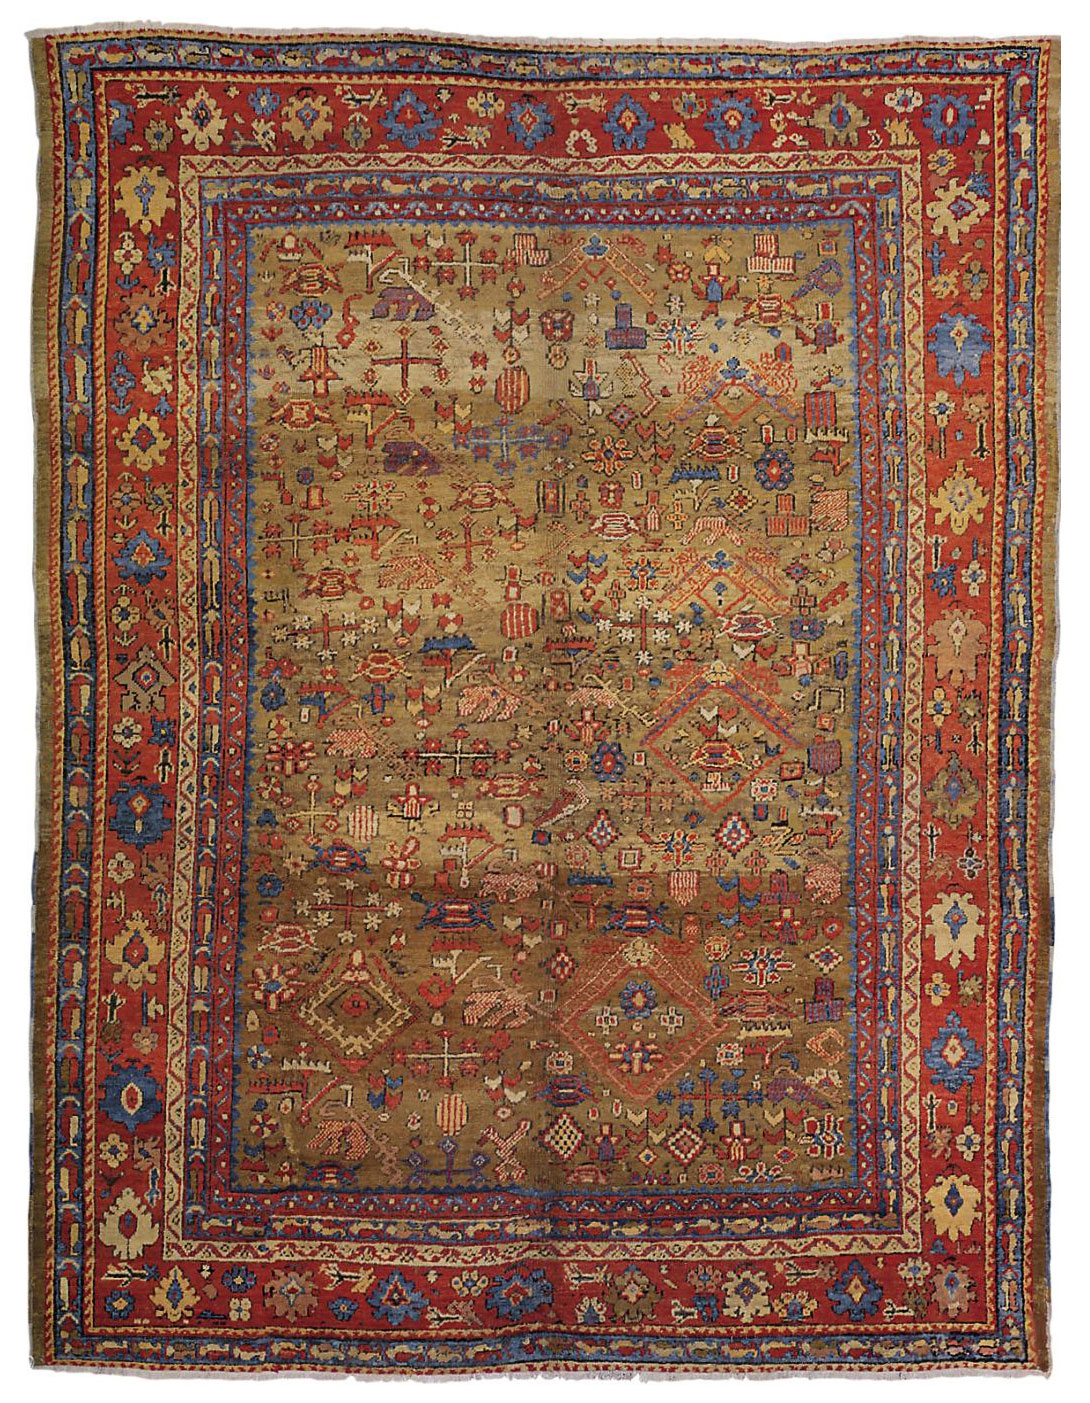 A WEST ANATOLIAN CARPET